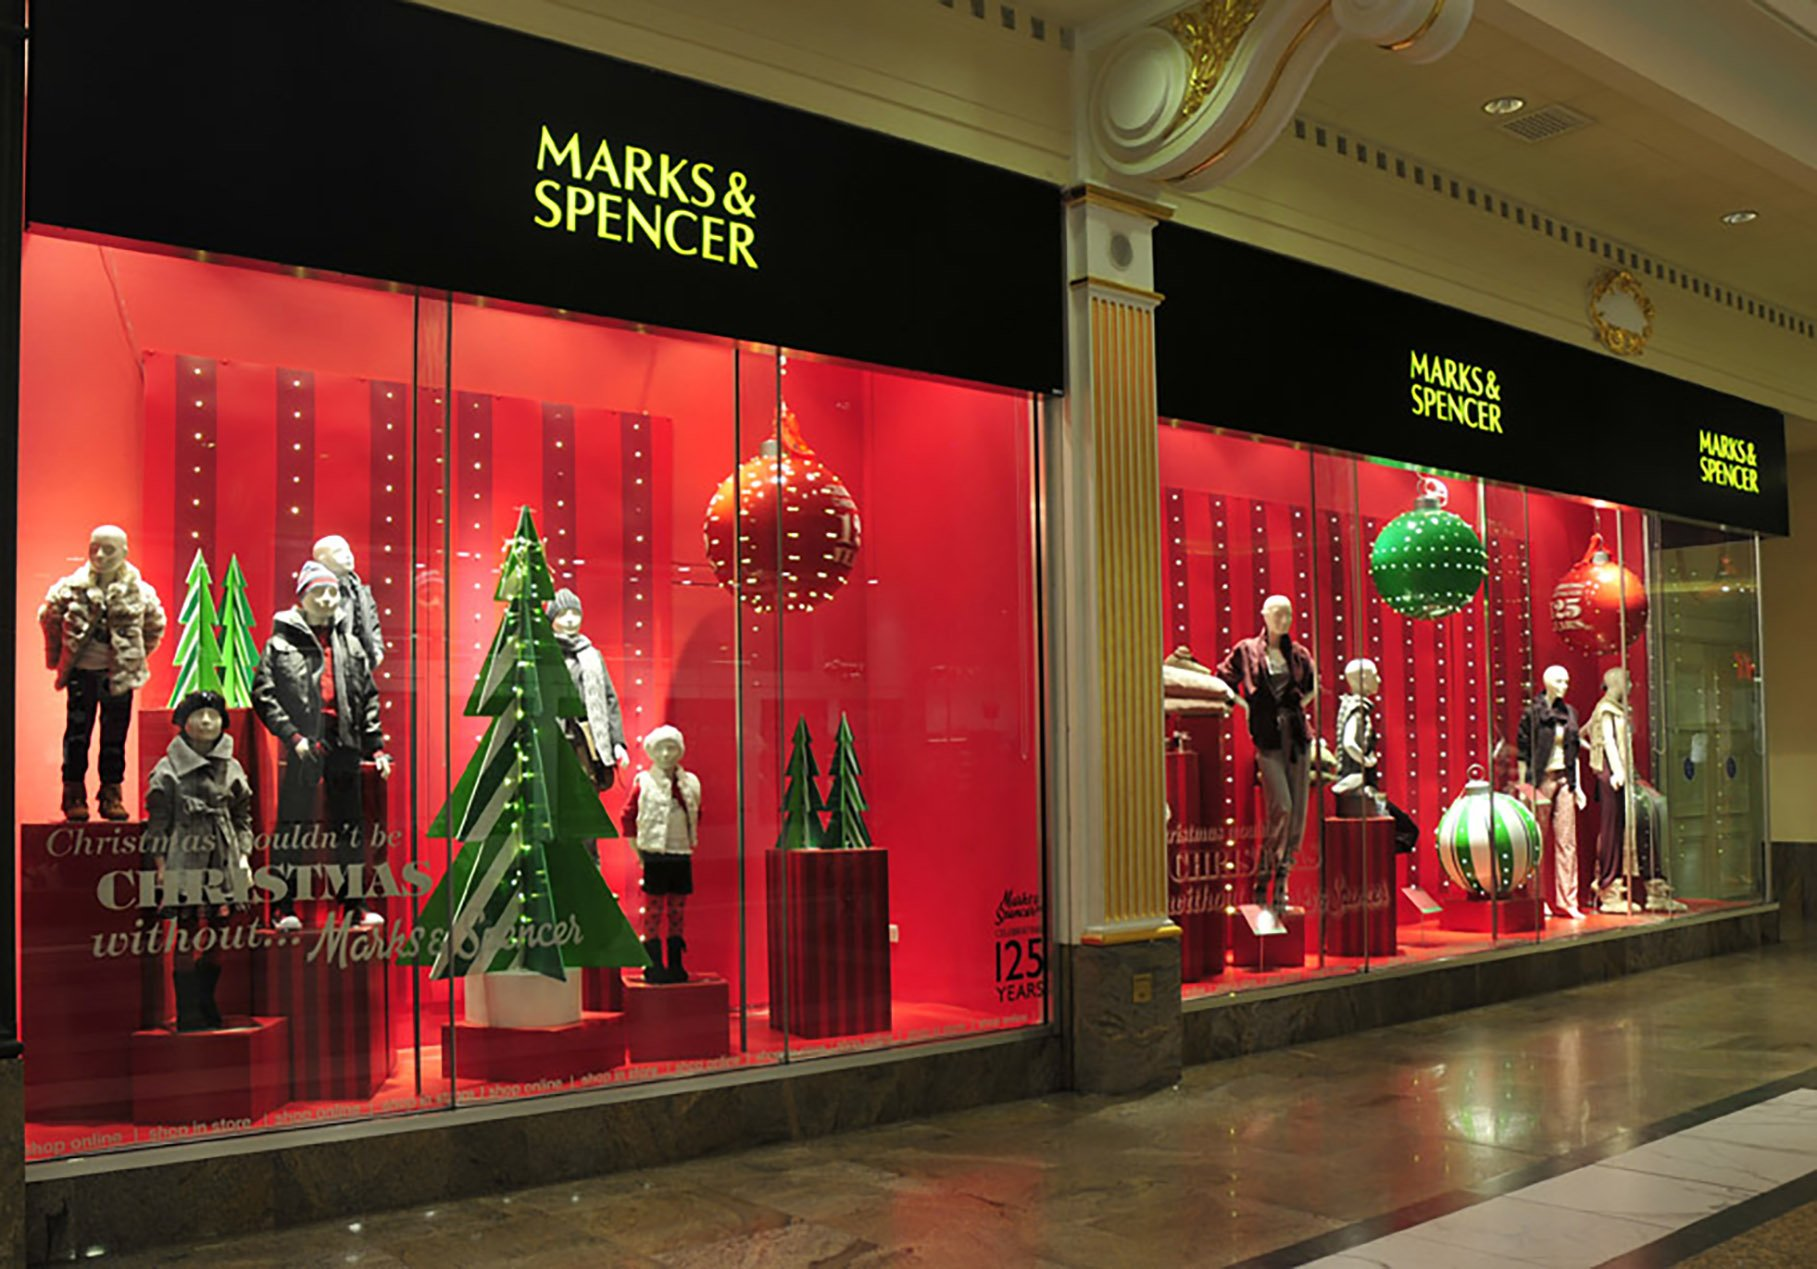 Marks & Spencer Retail Photography